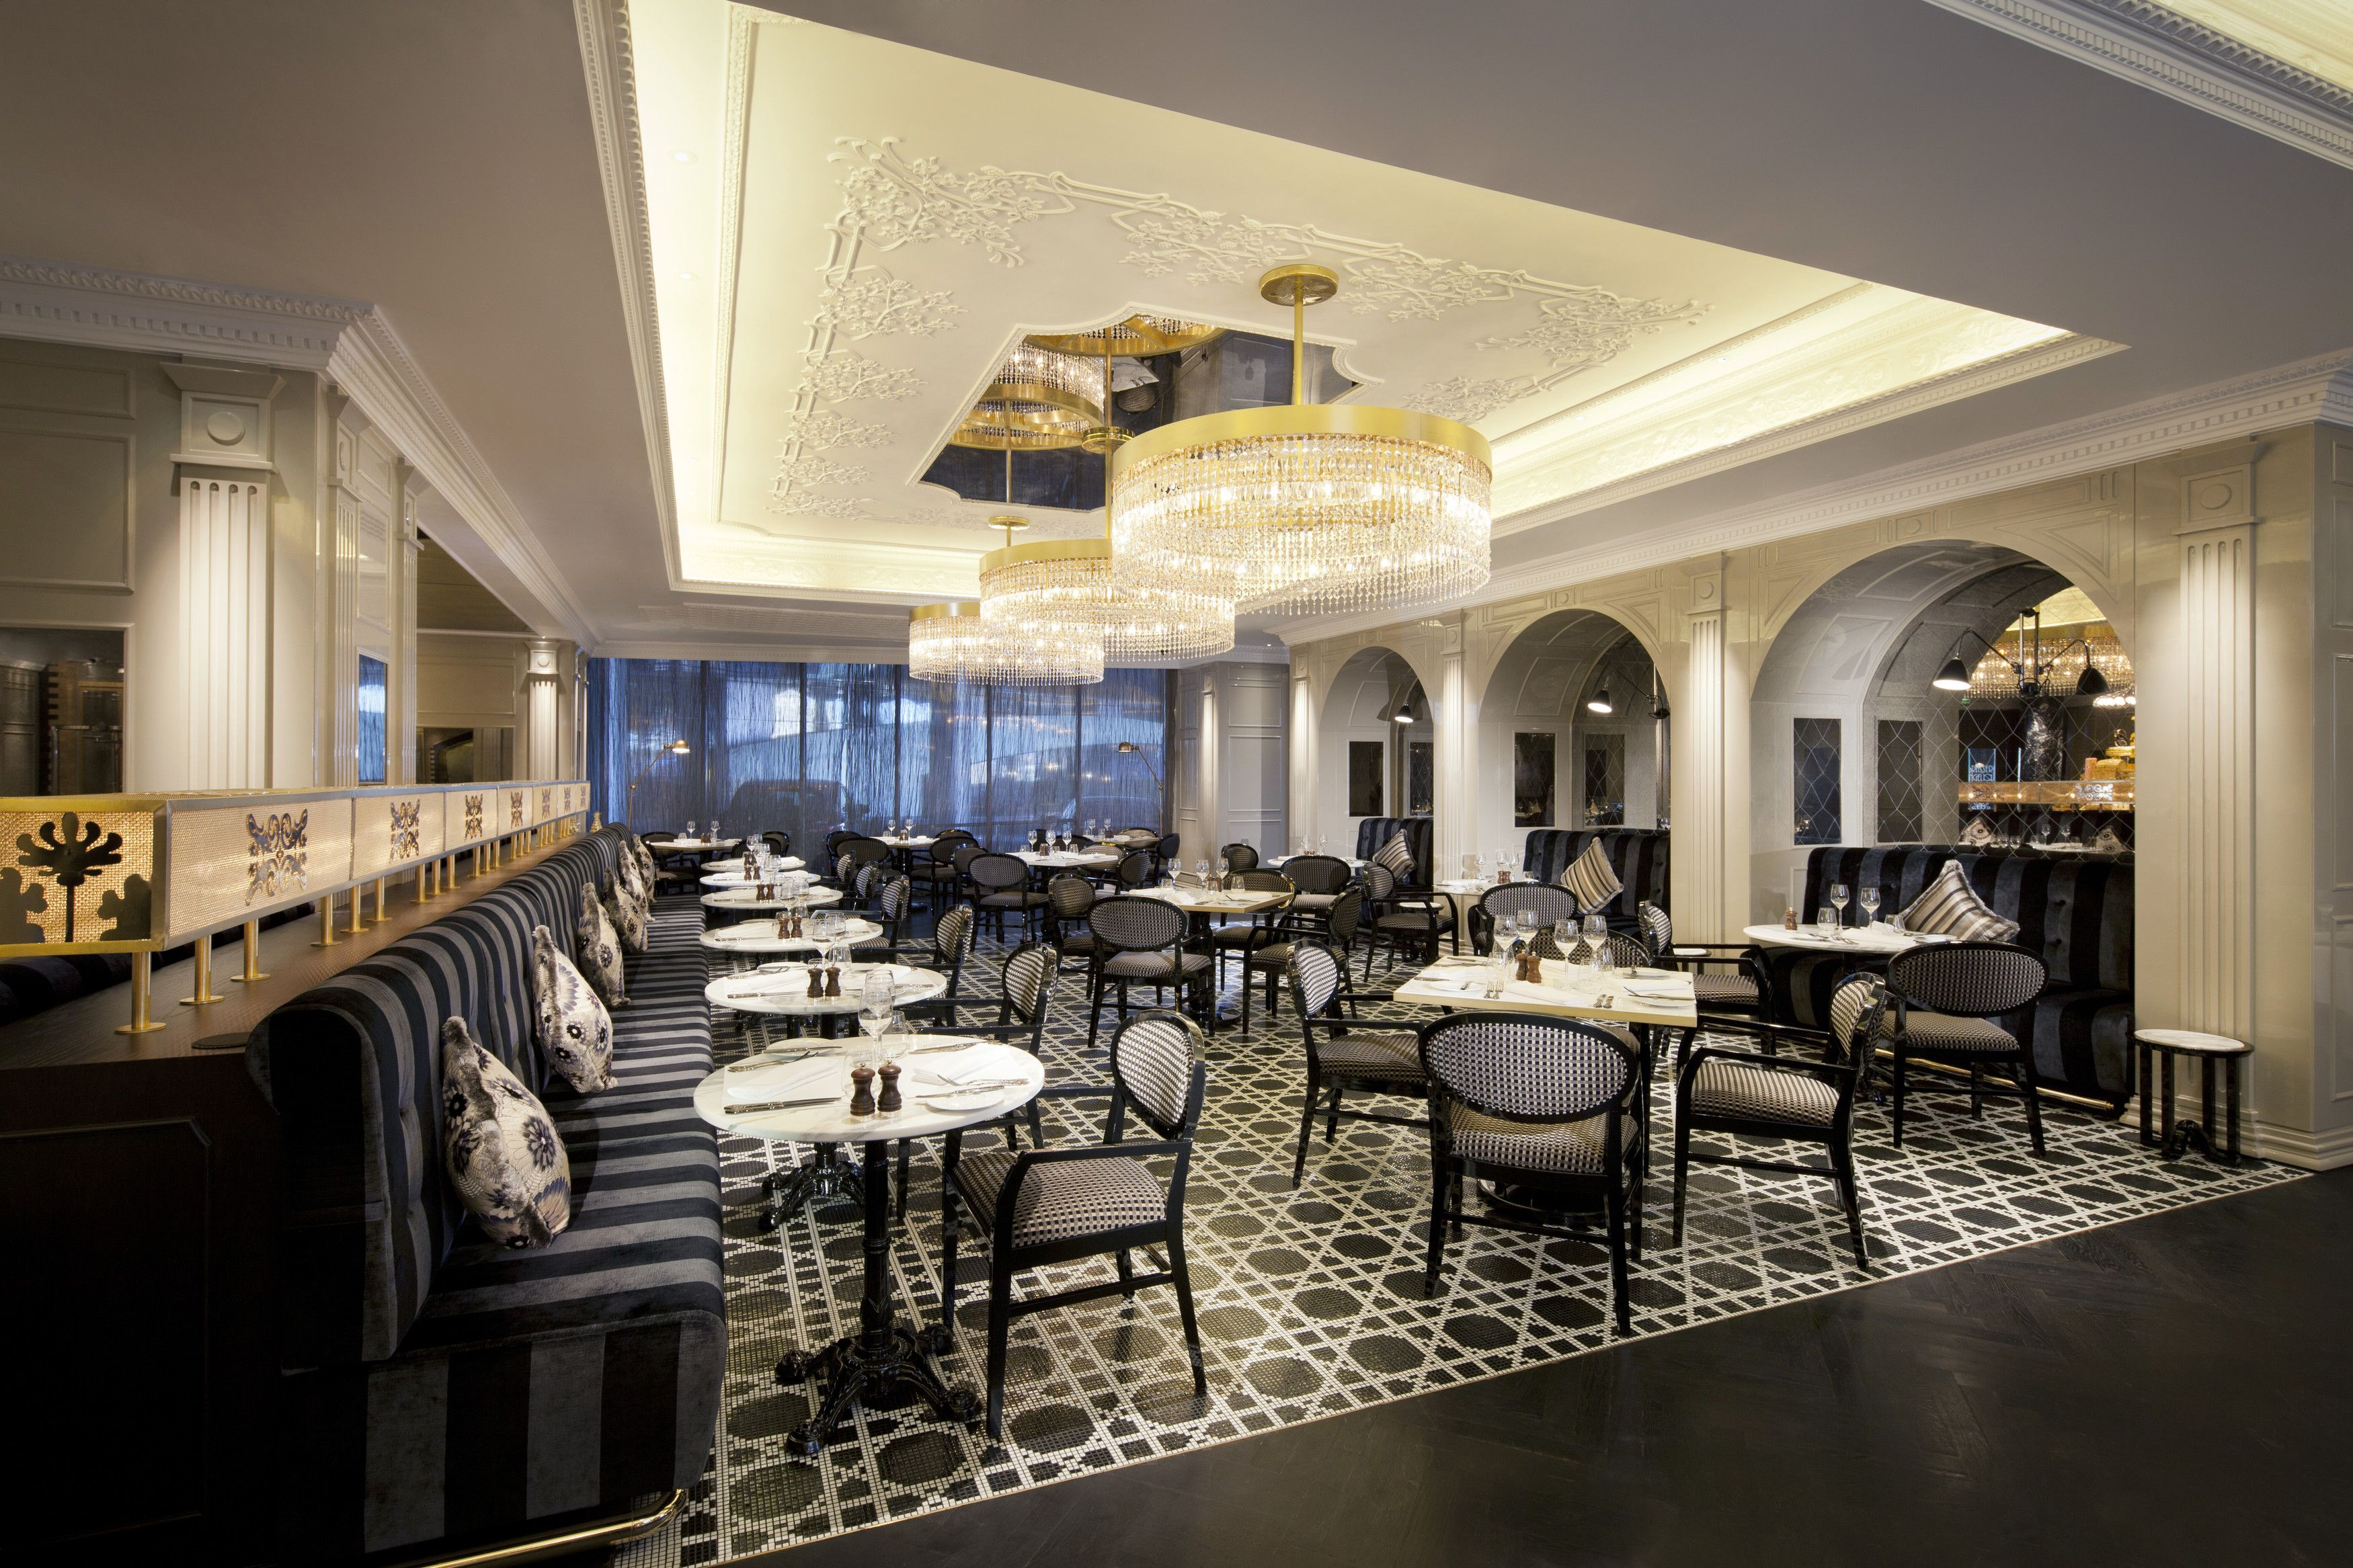 Jumeirah at Etihad Towers Hotel - Abu Dhabi Restaurants - Brasserie  Angelique - French(画像あり)